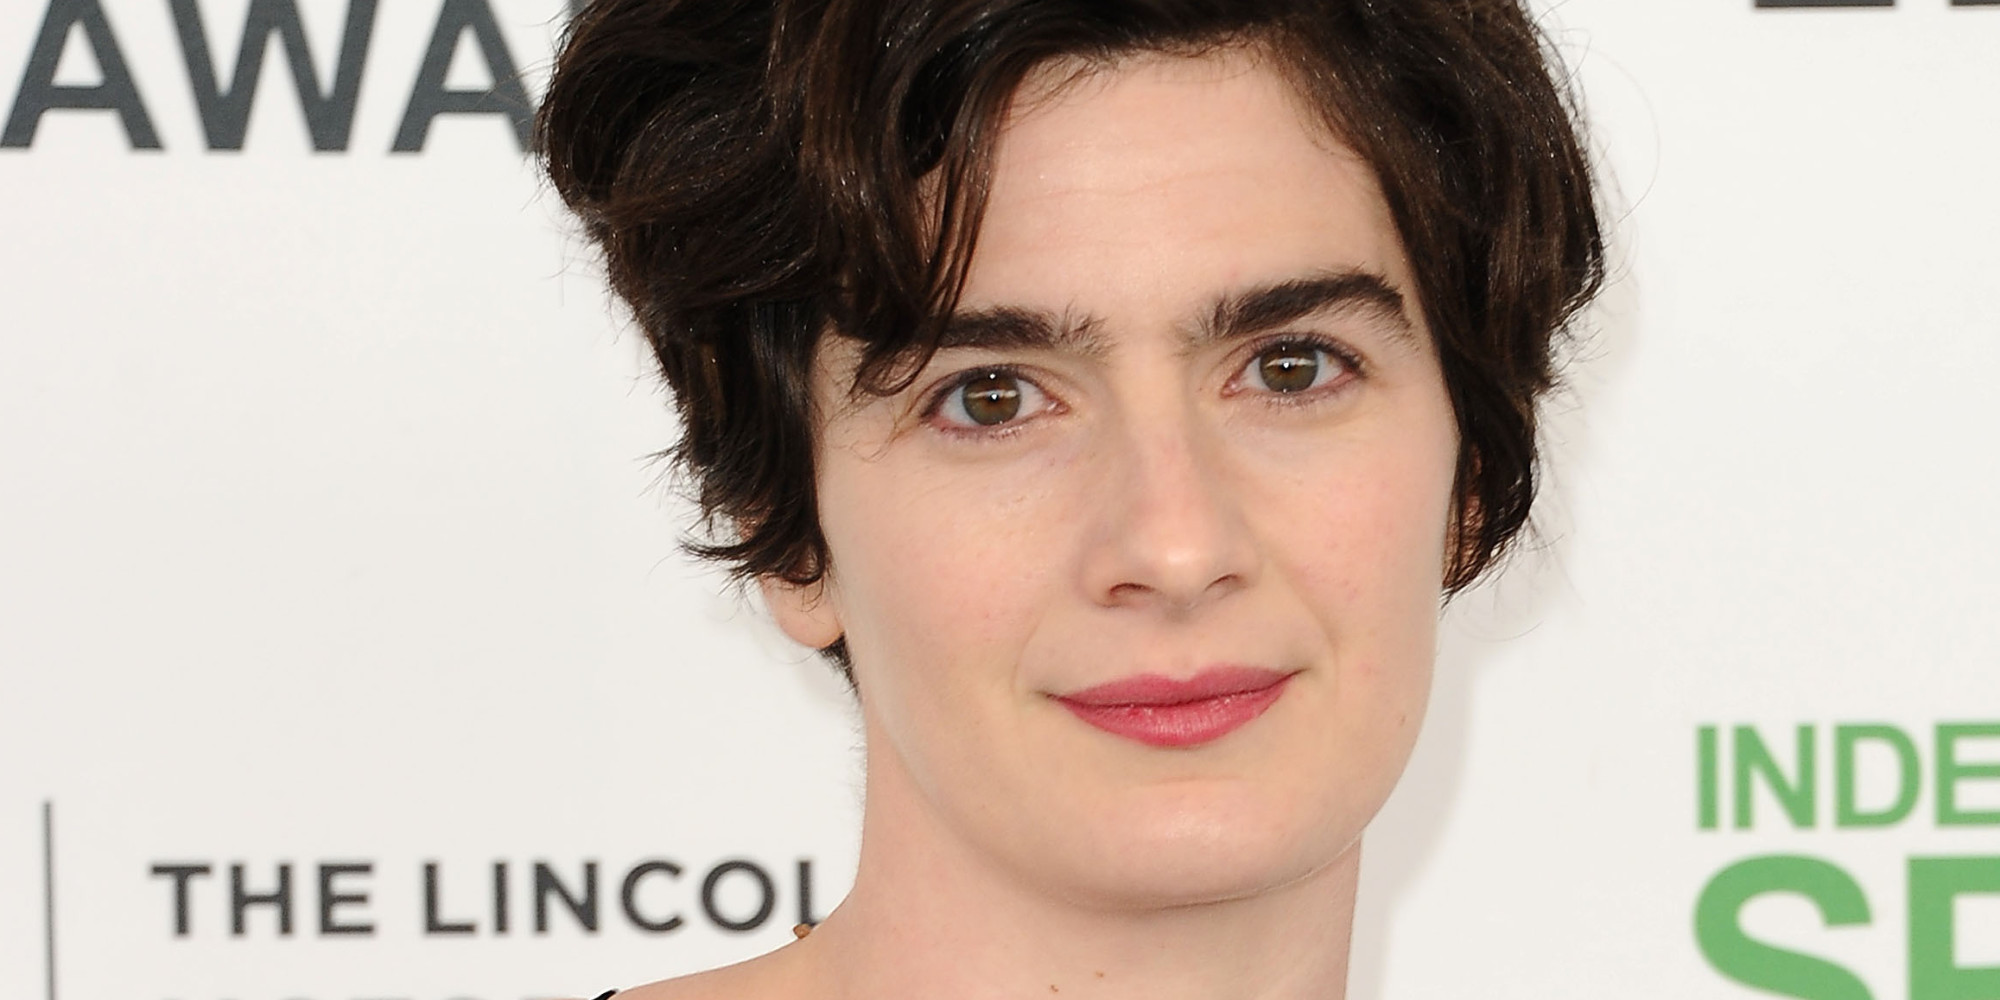 Gaby Hoffmann earned a  million dollar salary, leaving the net worth at 0.5 million in 2017